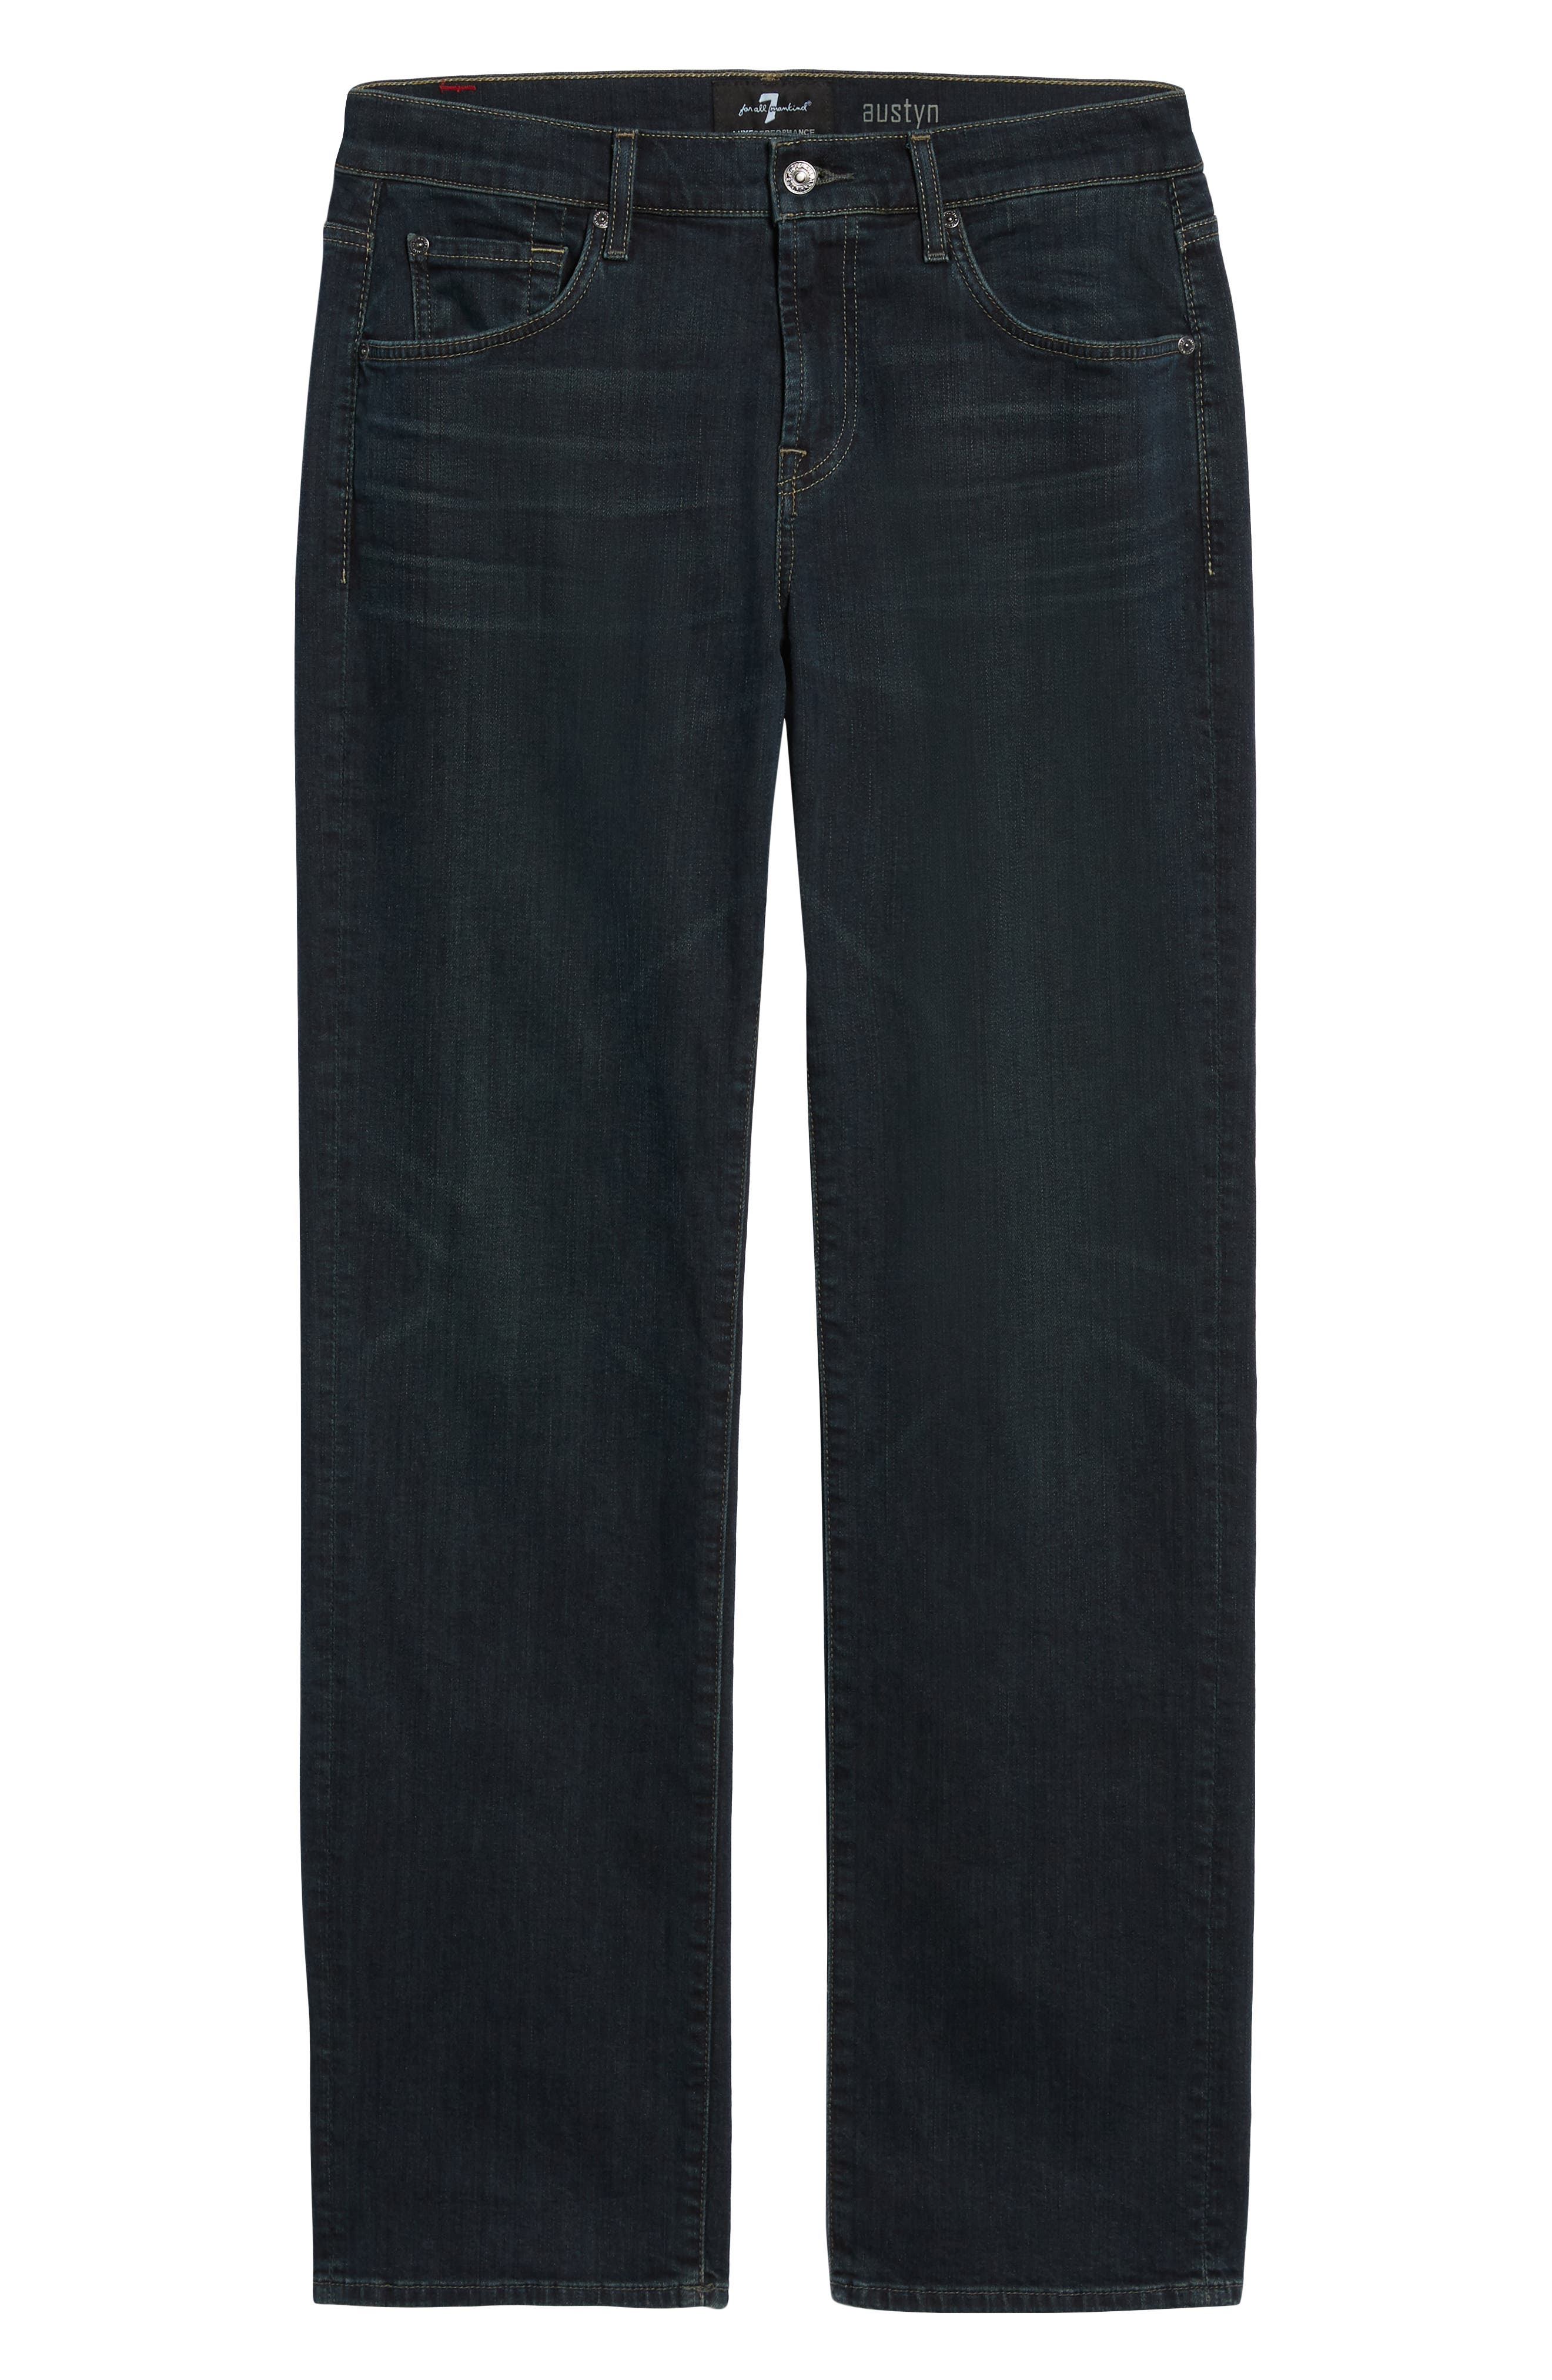 Austyn Relaxed Fit Jeans,                             Alternate thumbnail 6, color,                             CONTRA